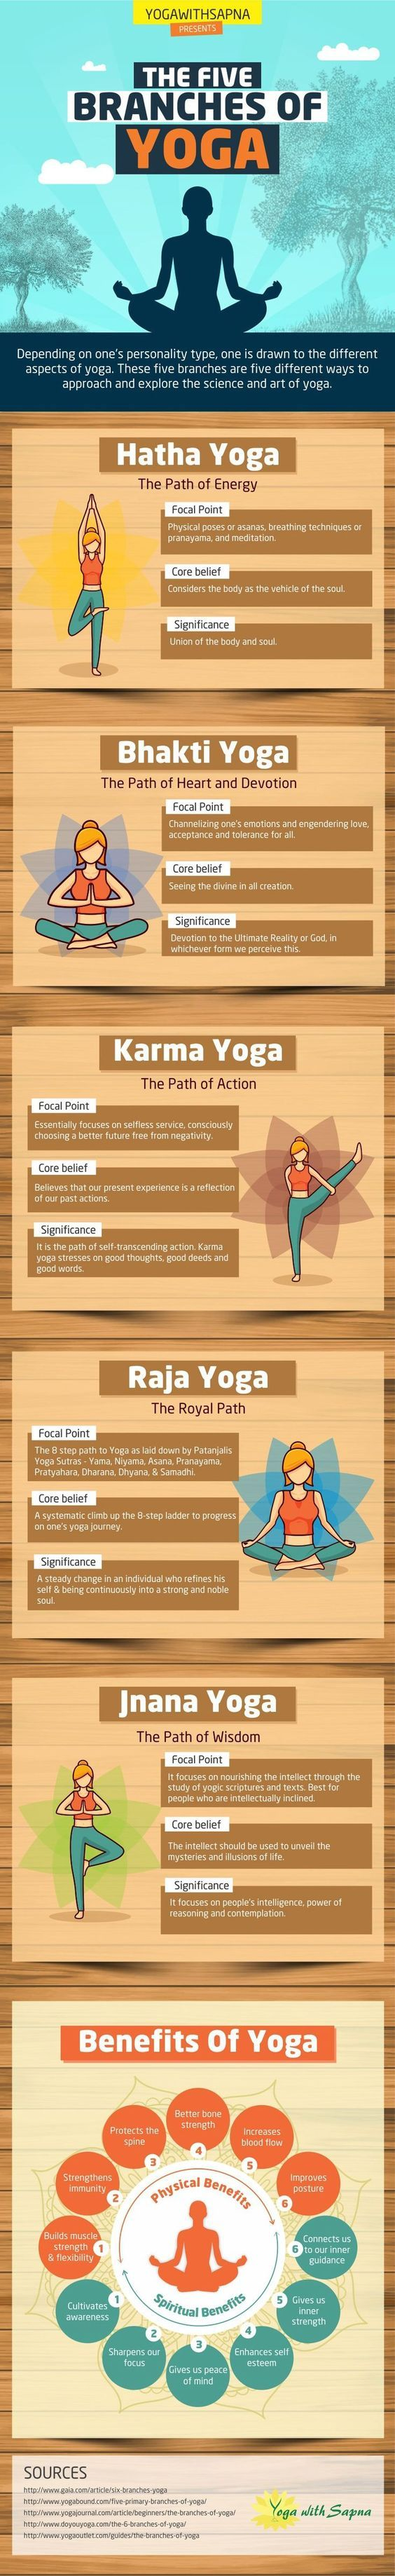 DownDog Yoga Poses for Fun & Fitness: The Five Branches of Yoga